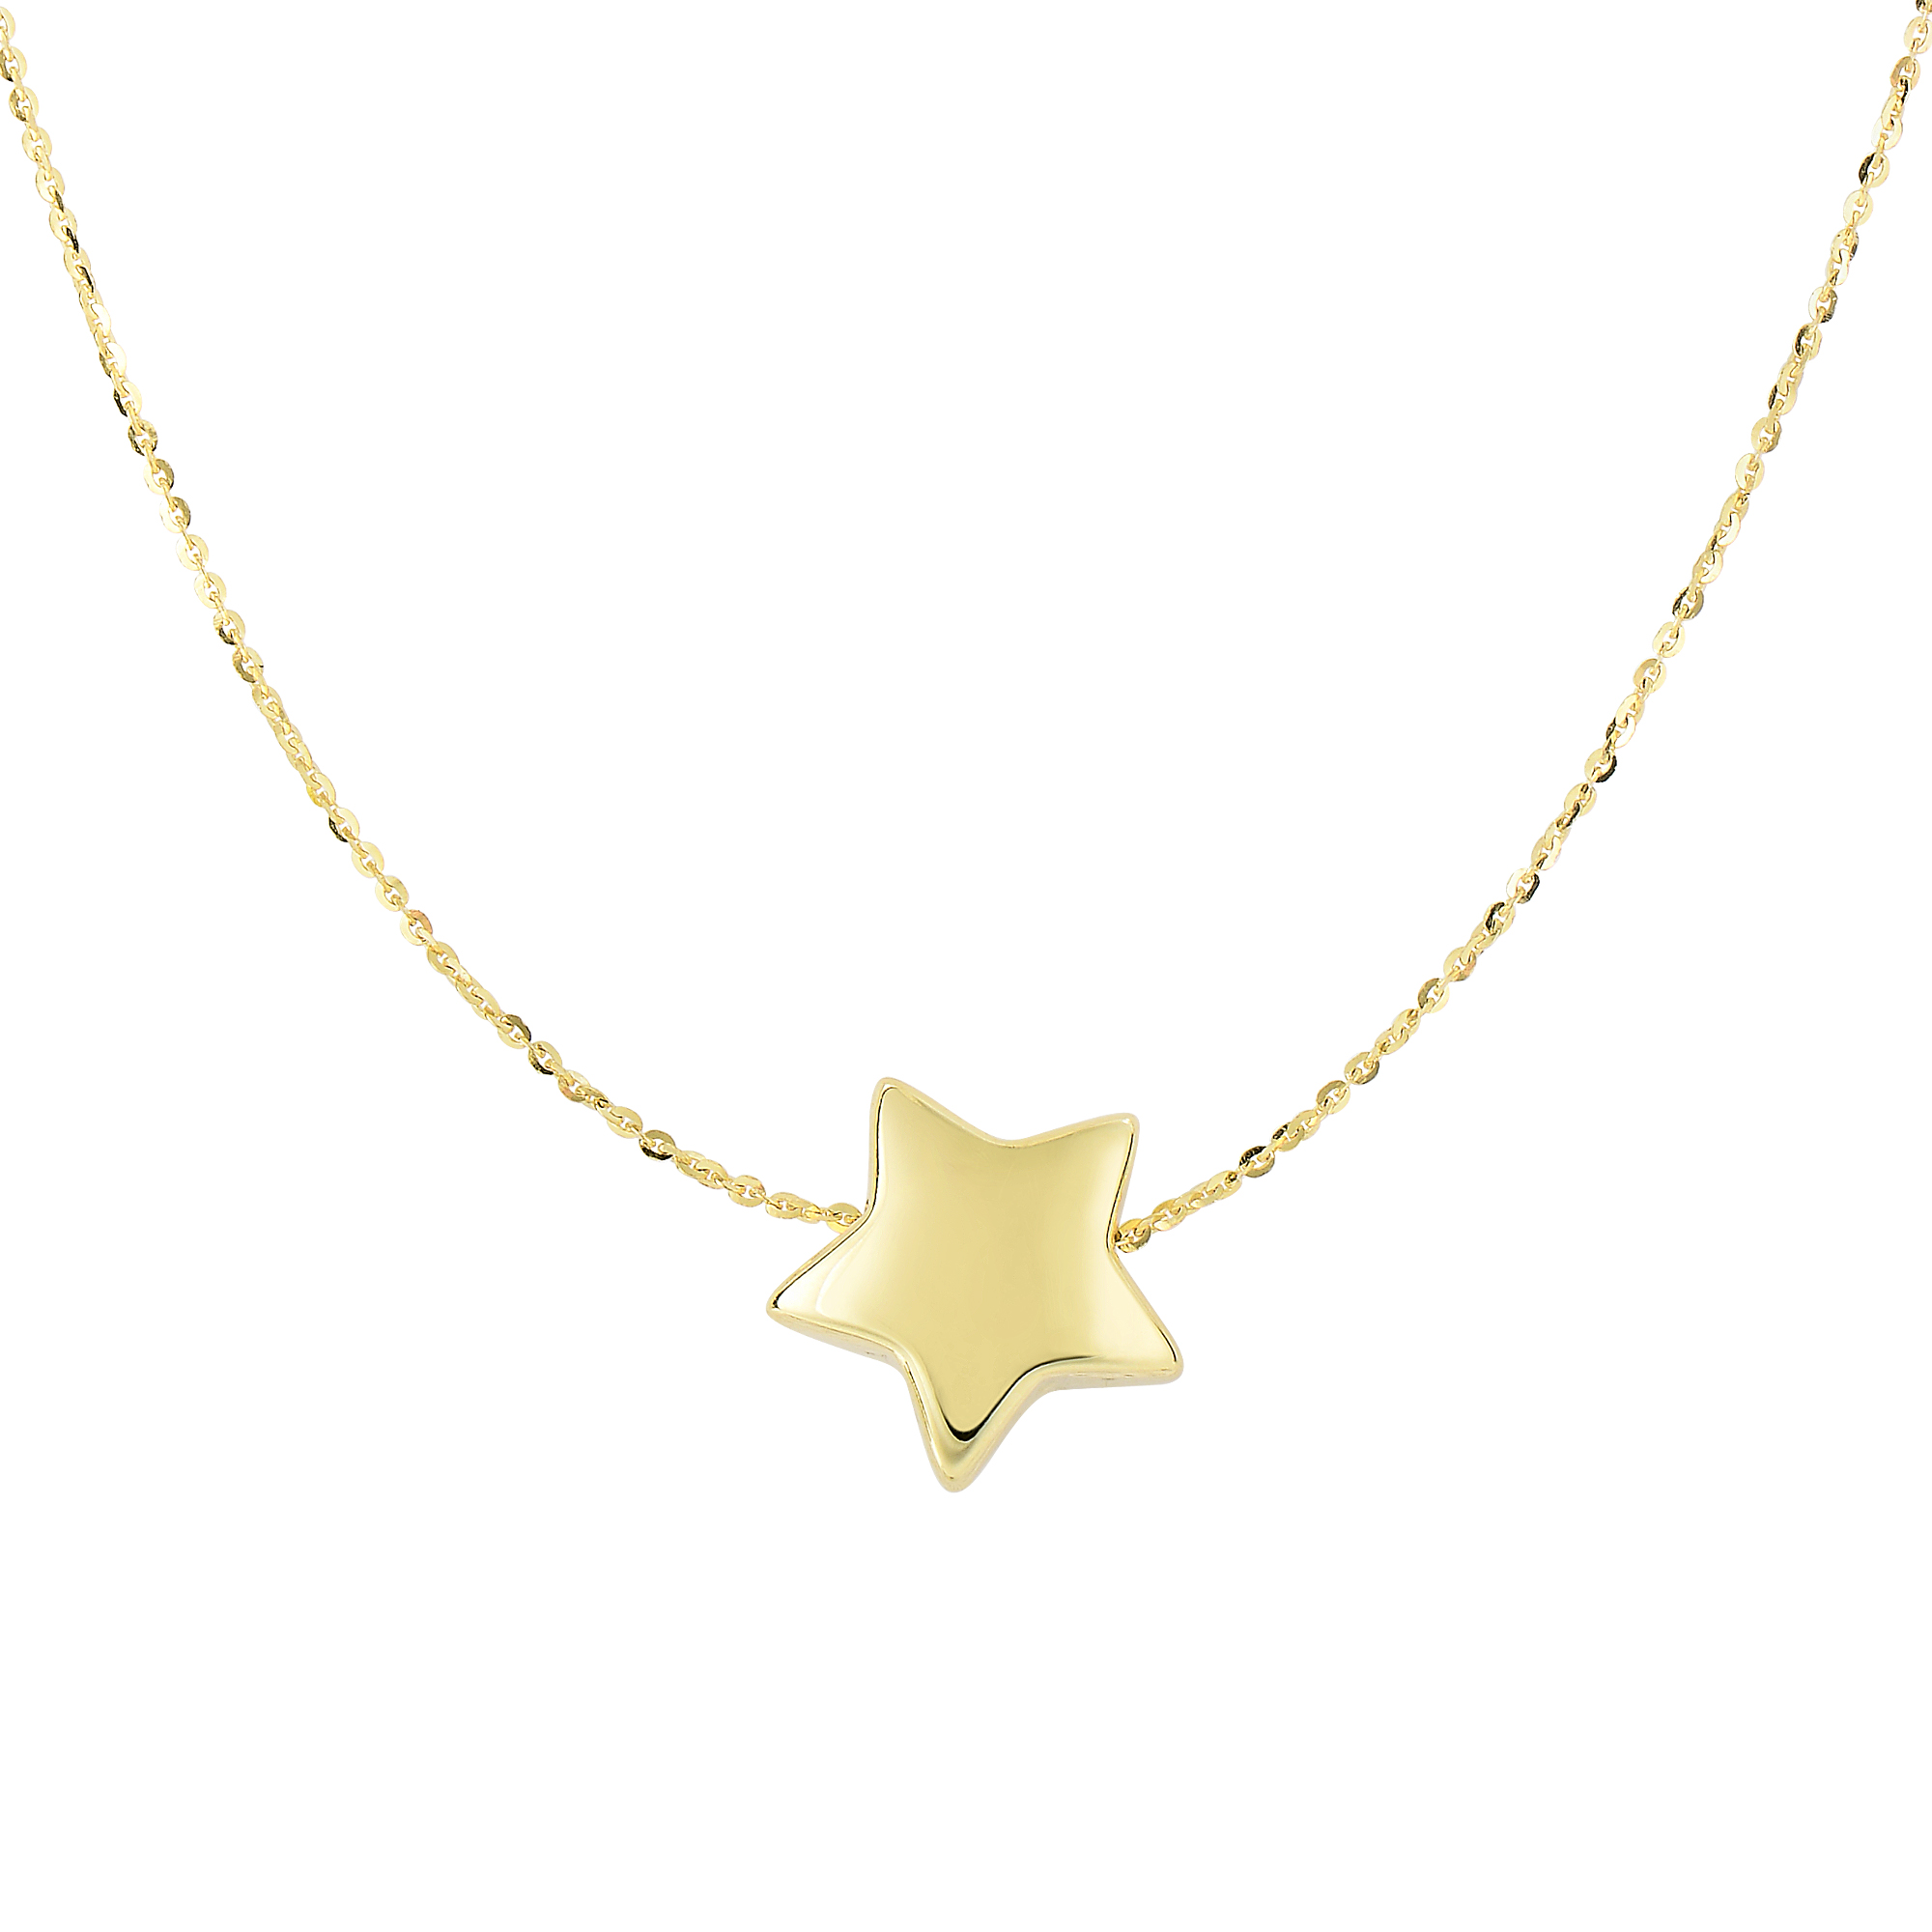 14kt 18 inches Yellow Gold Shiny 11.8mm Sliding Puffed Star On 0.87mm Diamond Cut Cable Chain Necklace with Spring Ring Clasp